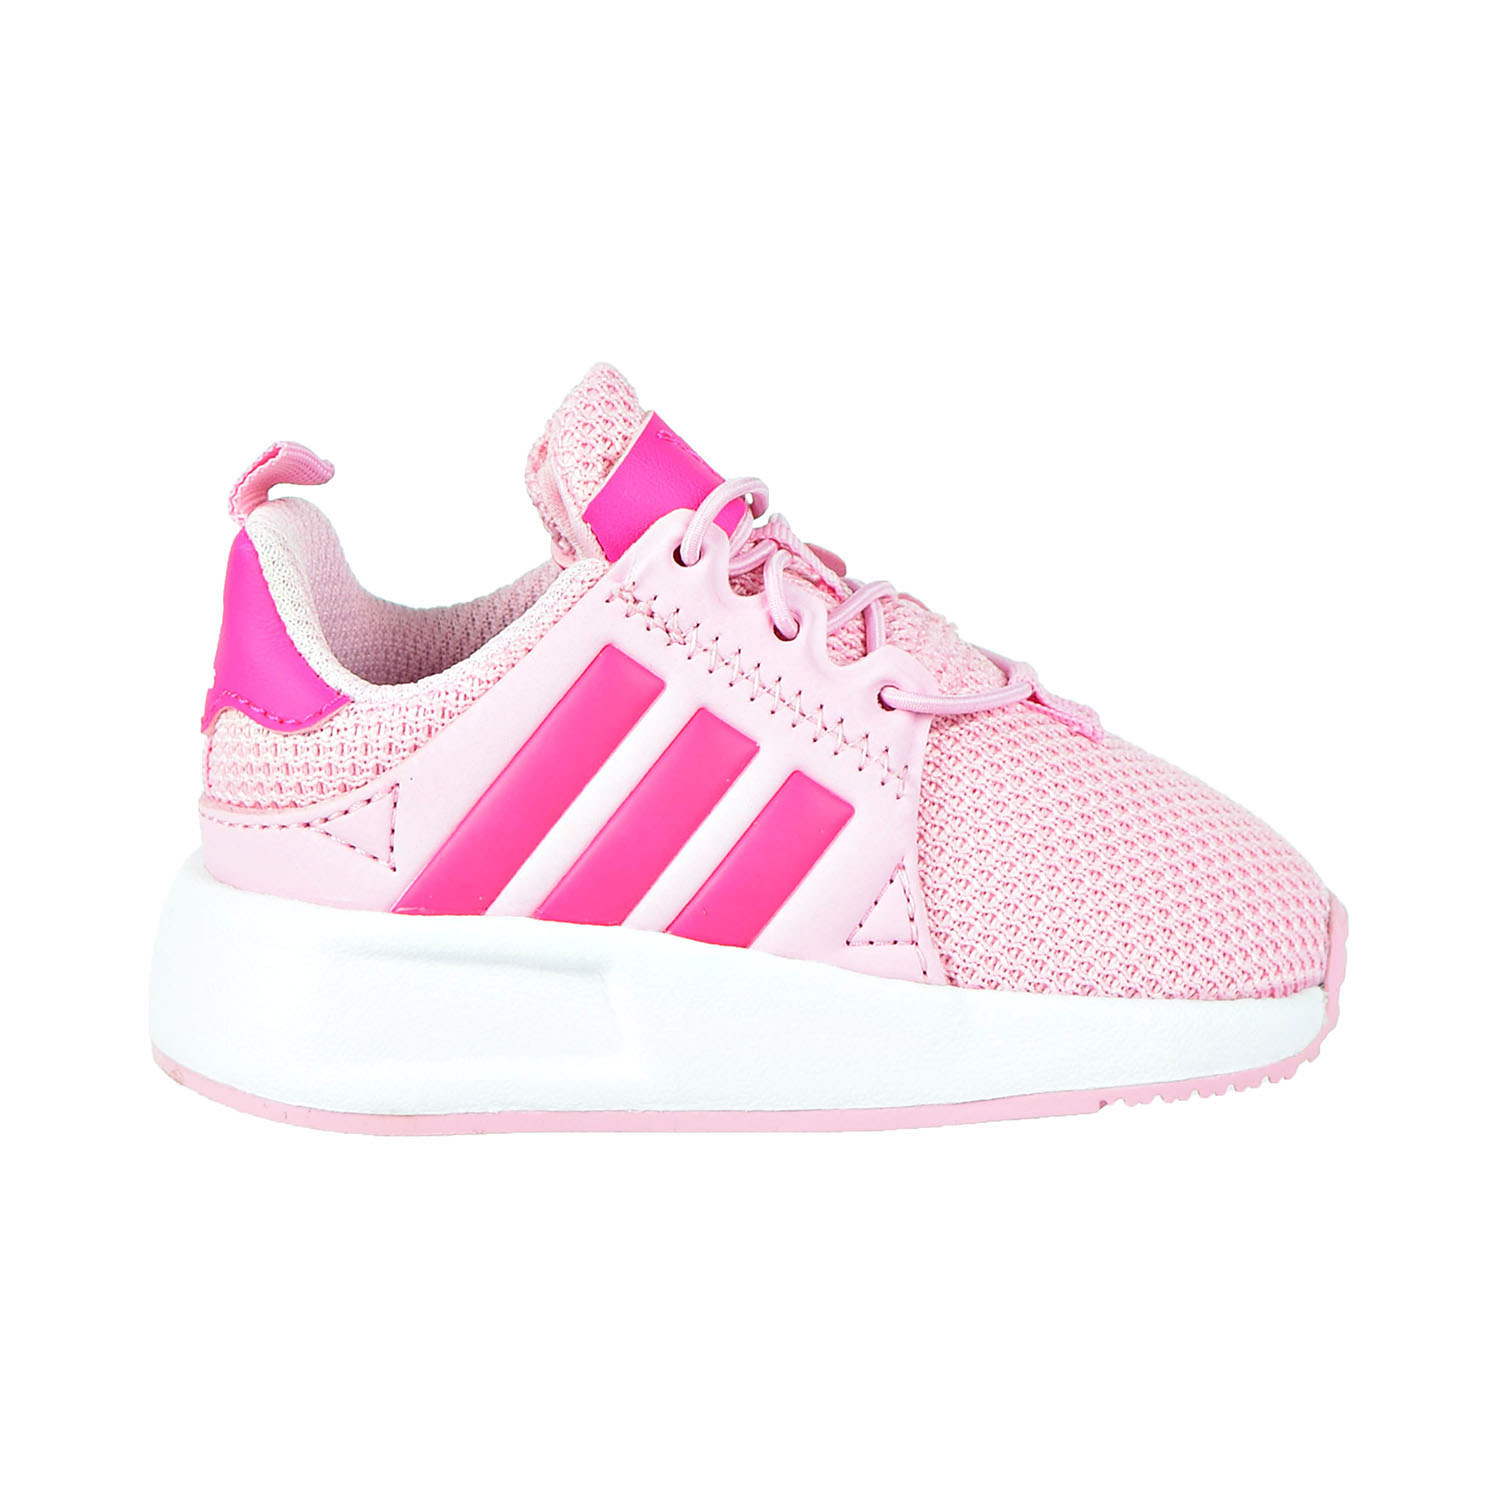 Adidas X_PLR Toddlers Shoes True Pink